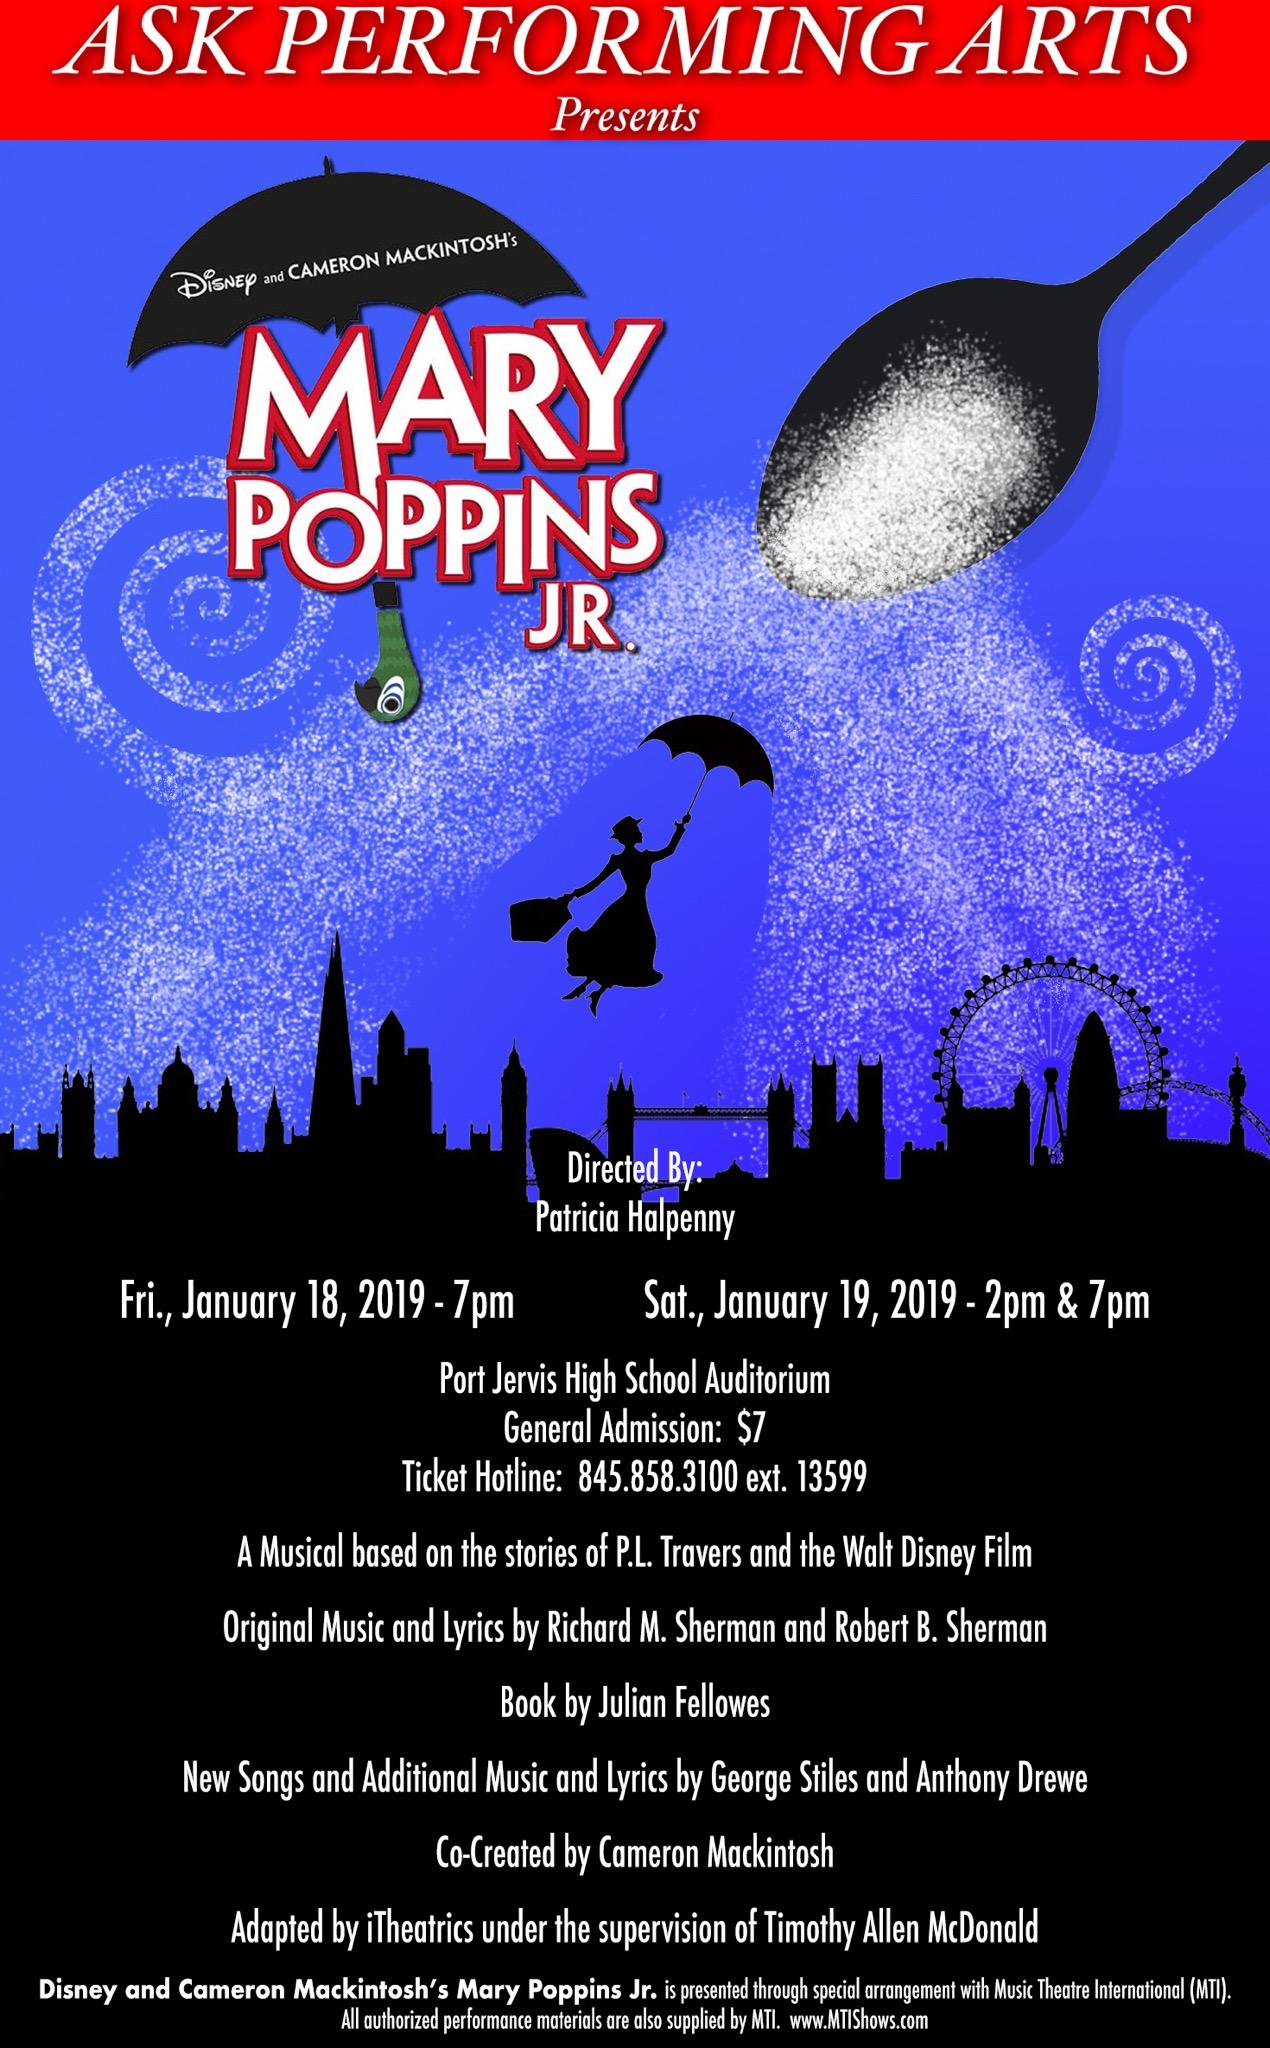 ASK Performing Arts Presents Mary Poppins JR  | District